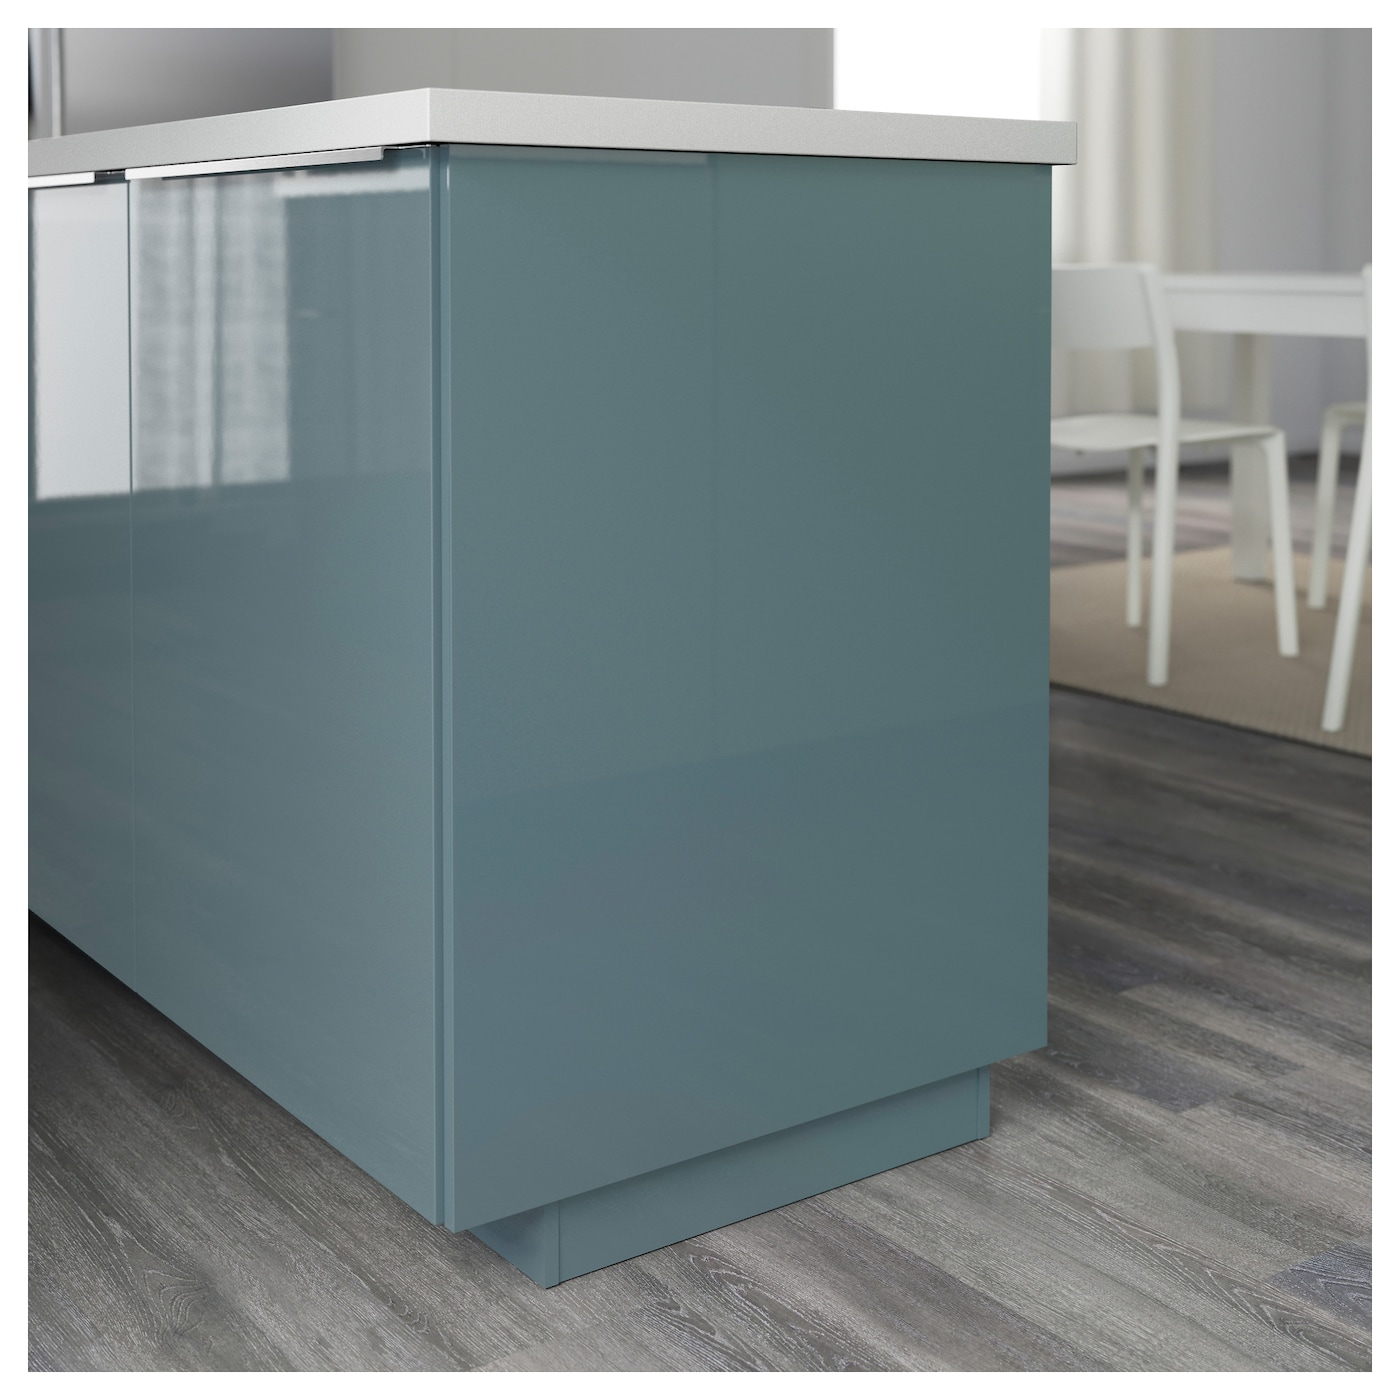 Kallarp cover panel high gloss grey turquoise 39x86 cm ikea for Cuisine kallarp